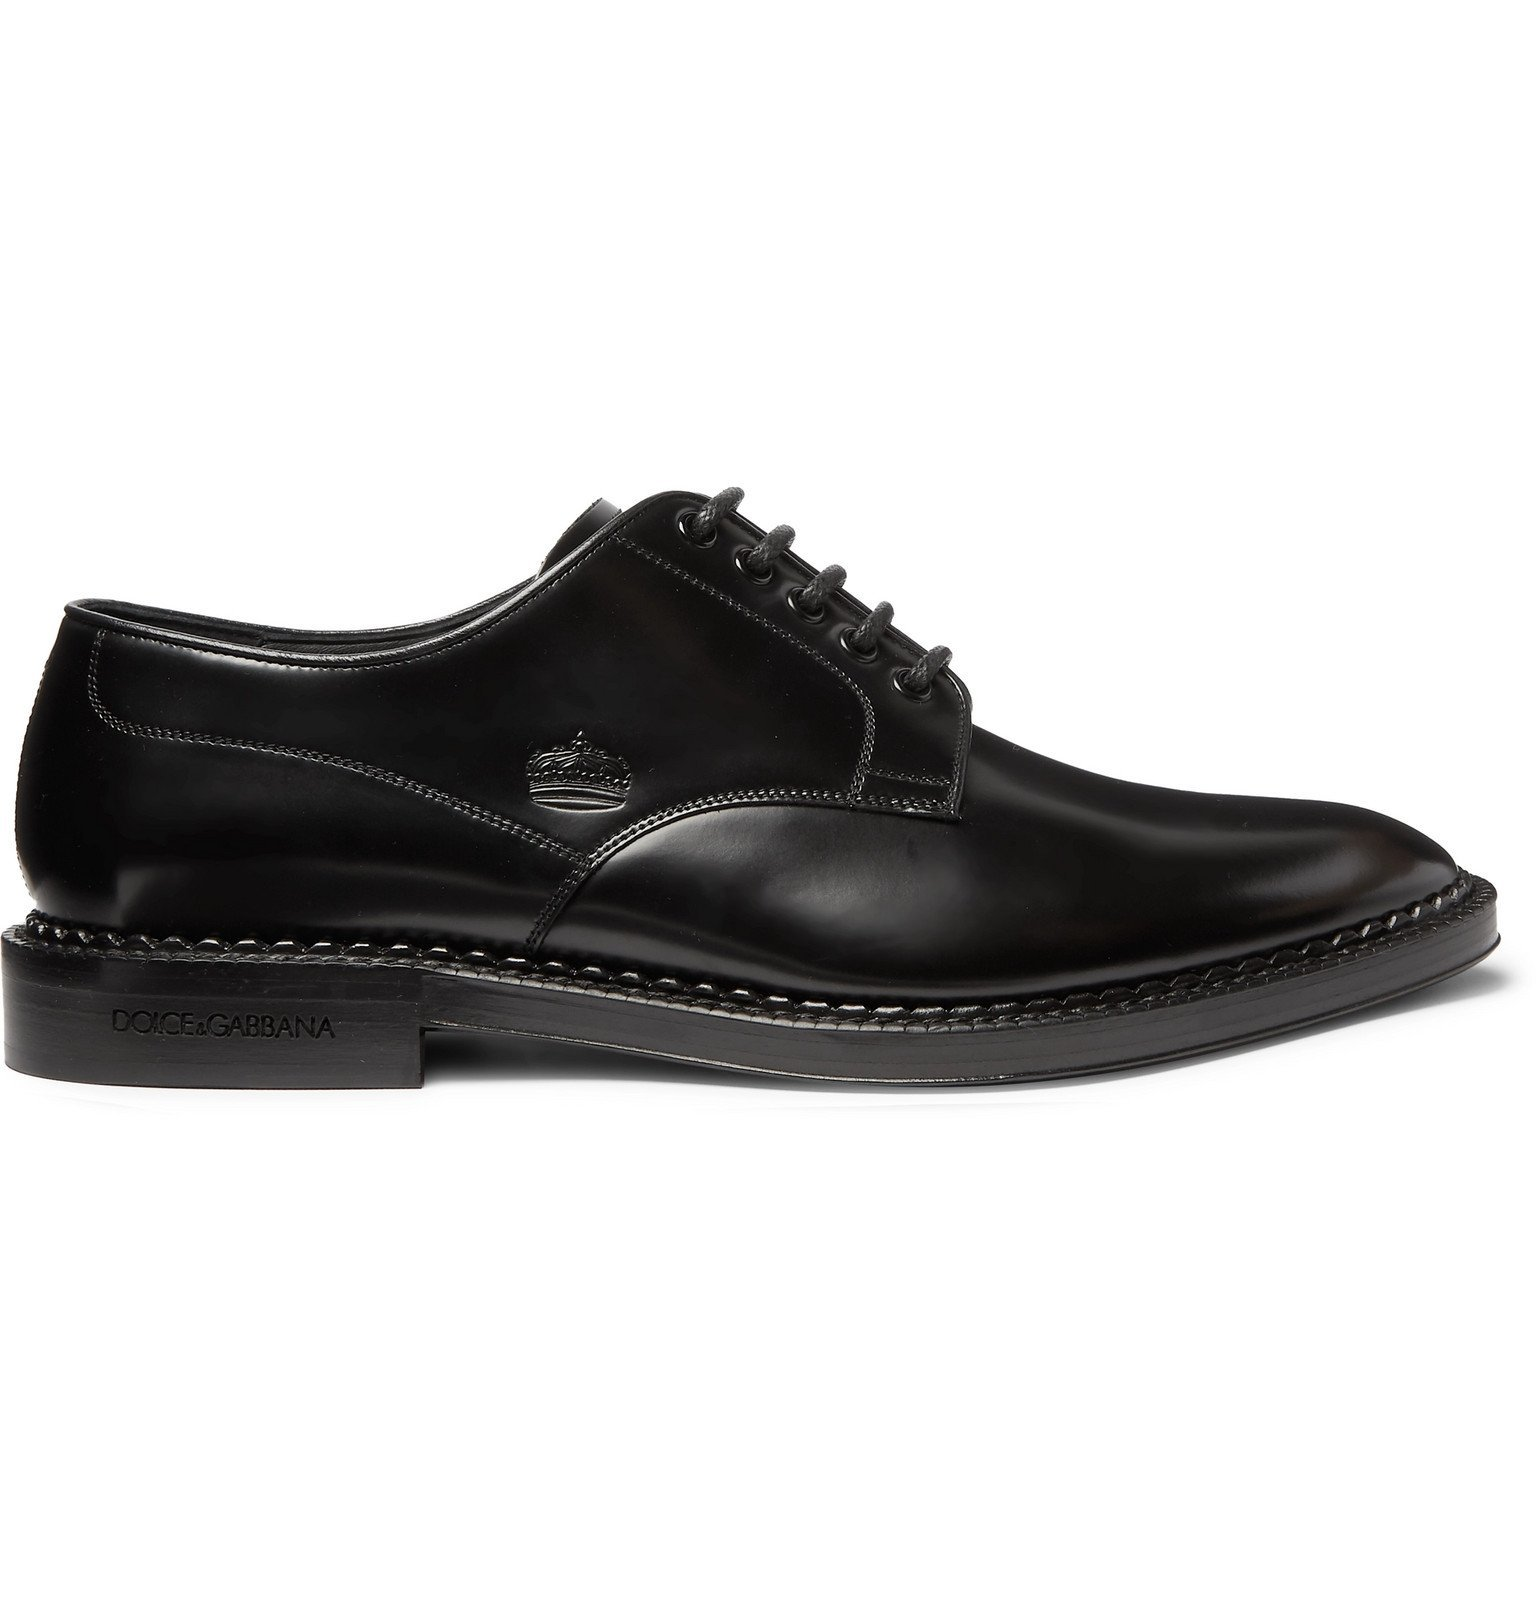 Dolce & Gabbana - Embossed Leather Derby Shoes - Black